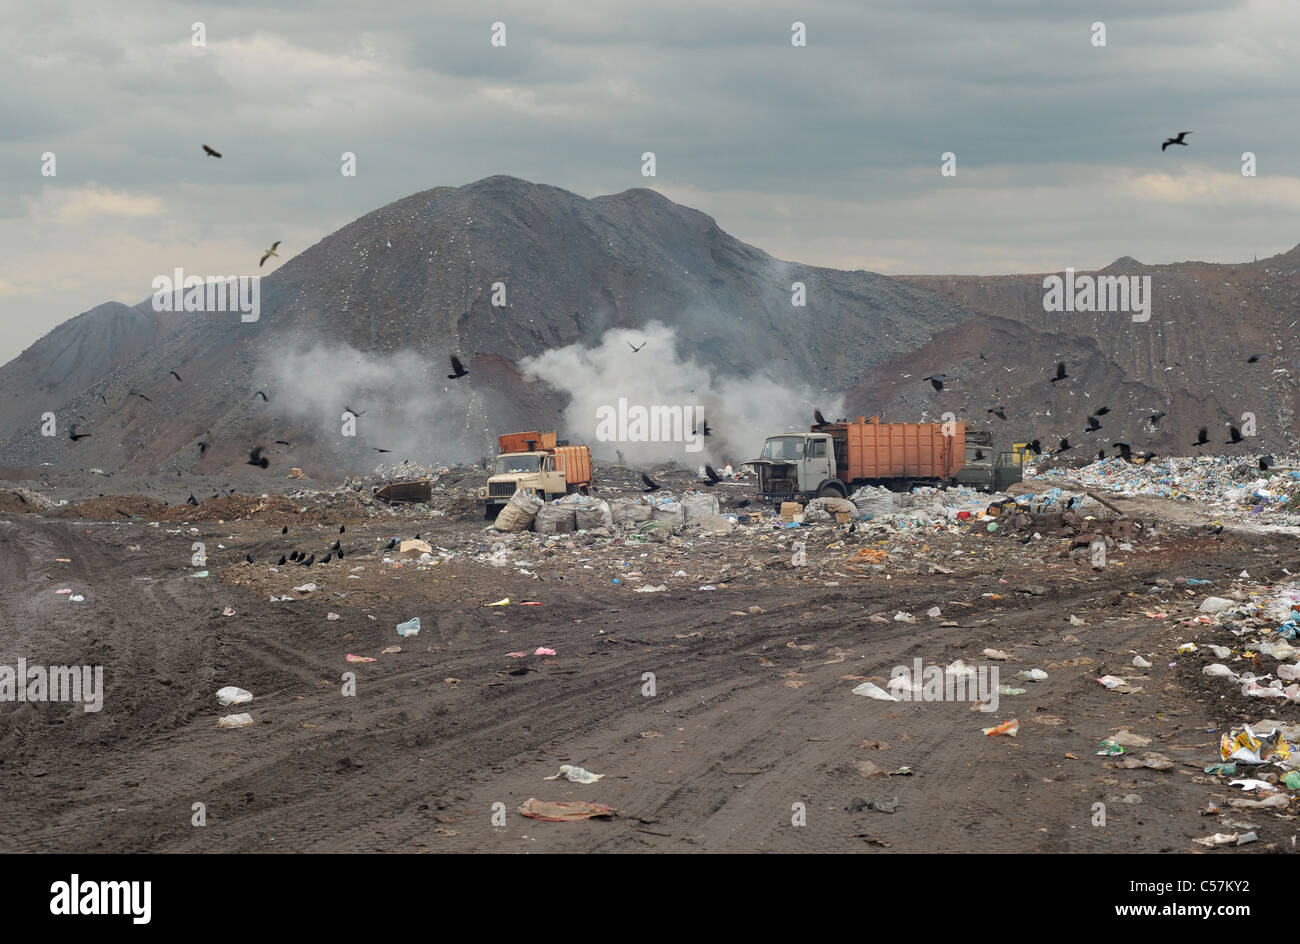 Garbage trucks on a city dump of dust - Stock Image